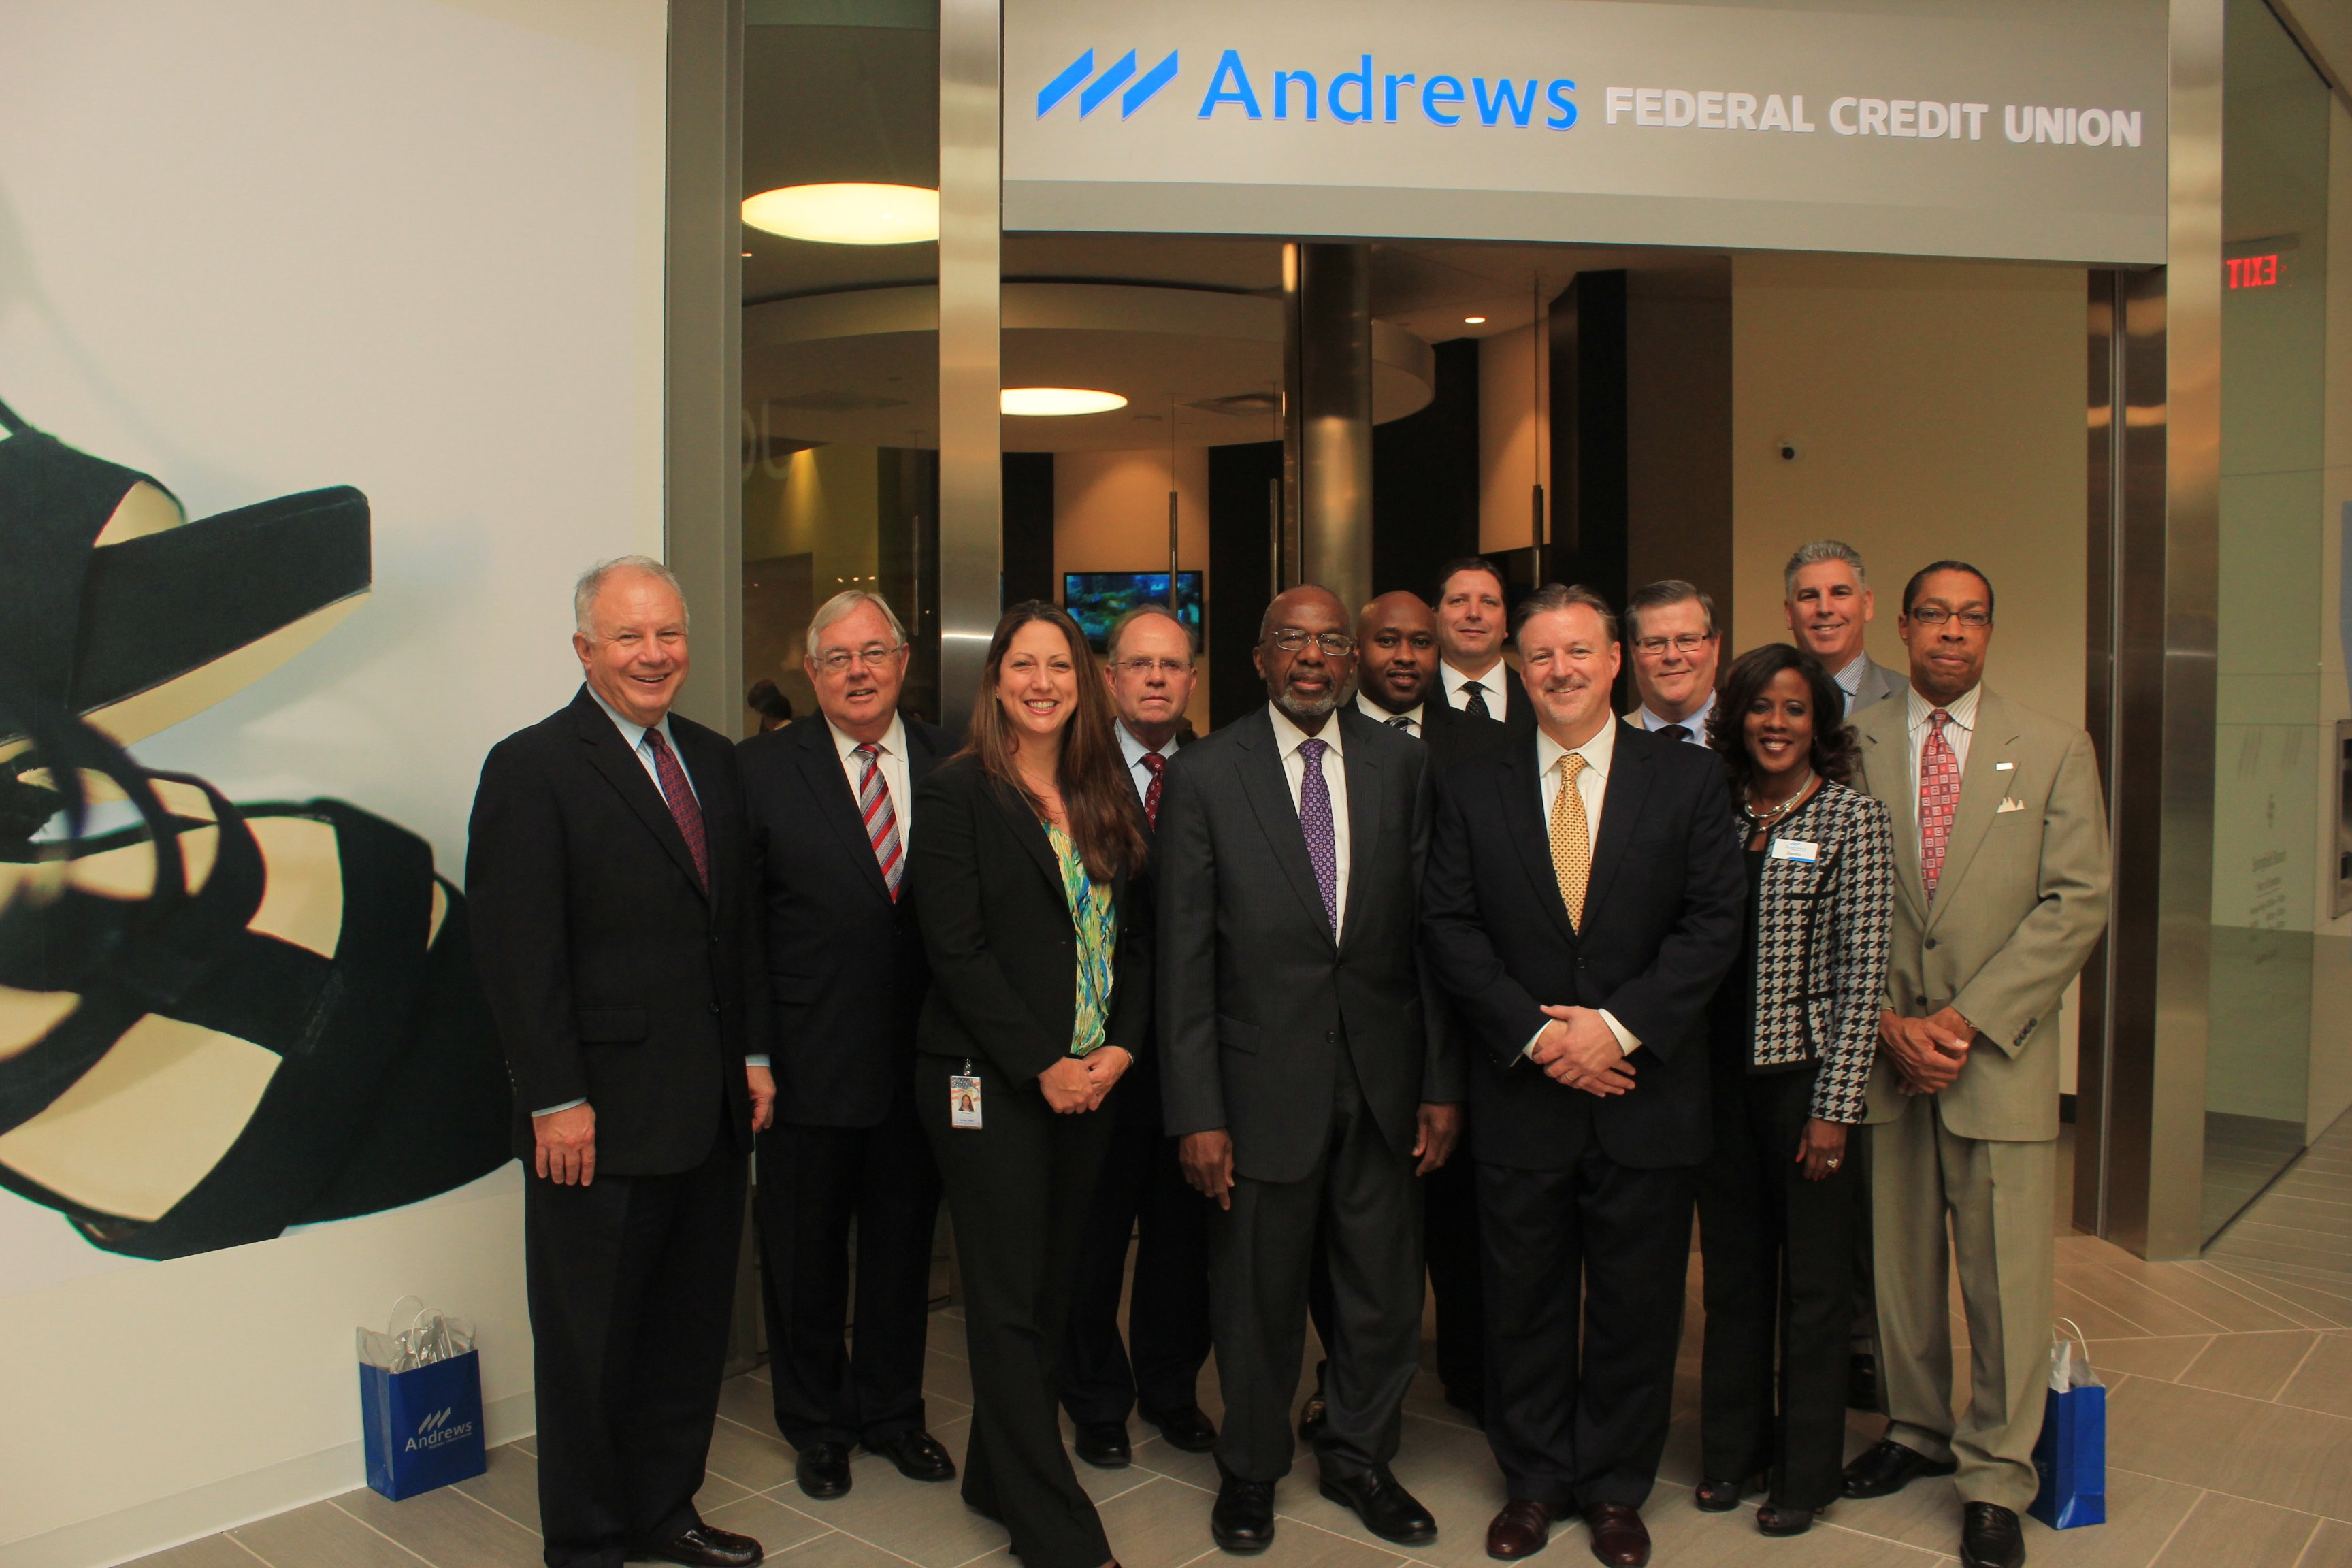 andrews federal credit union staff high tech branch